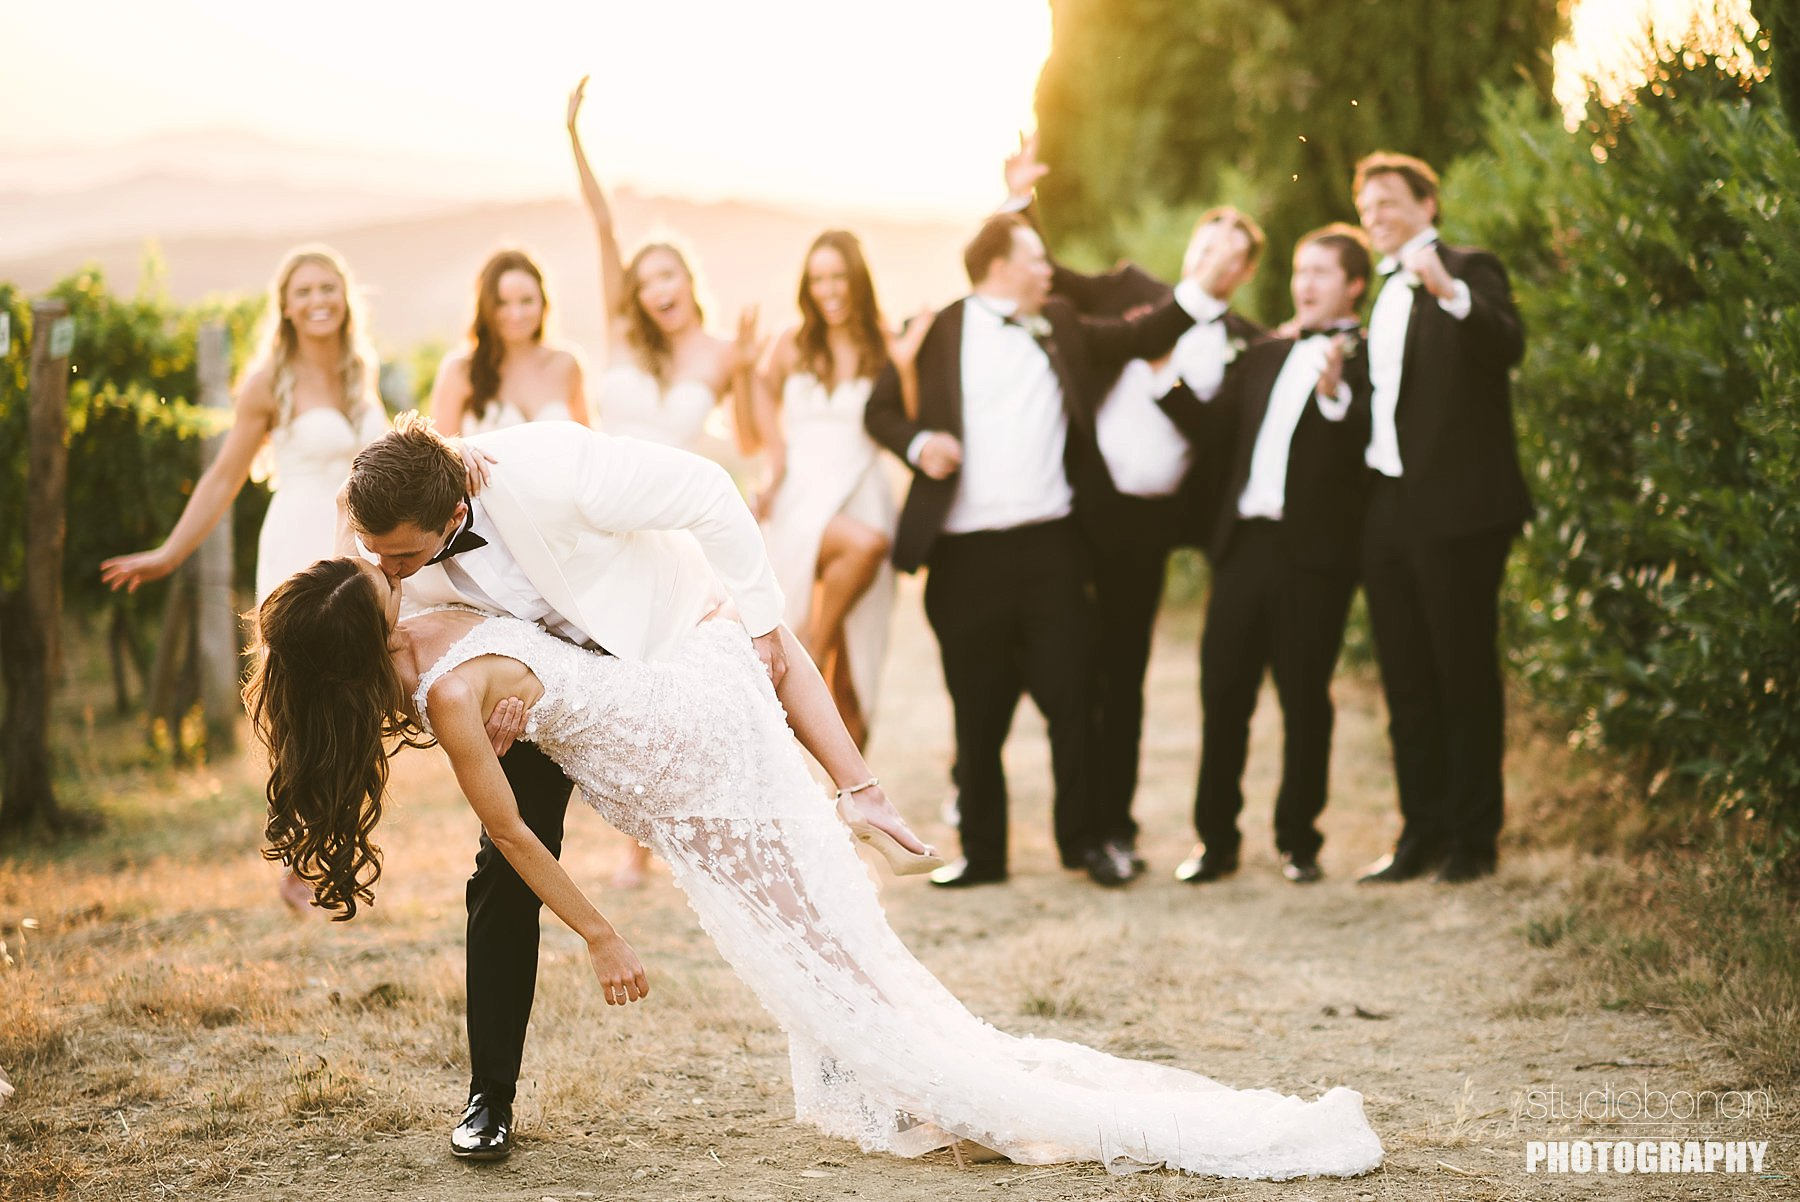 Tuscany countryside destination wedding in Panzano, Chianti. Bride and groom are sharing some love with the bridal party